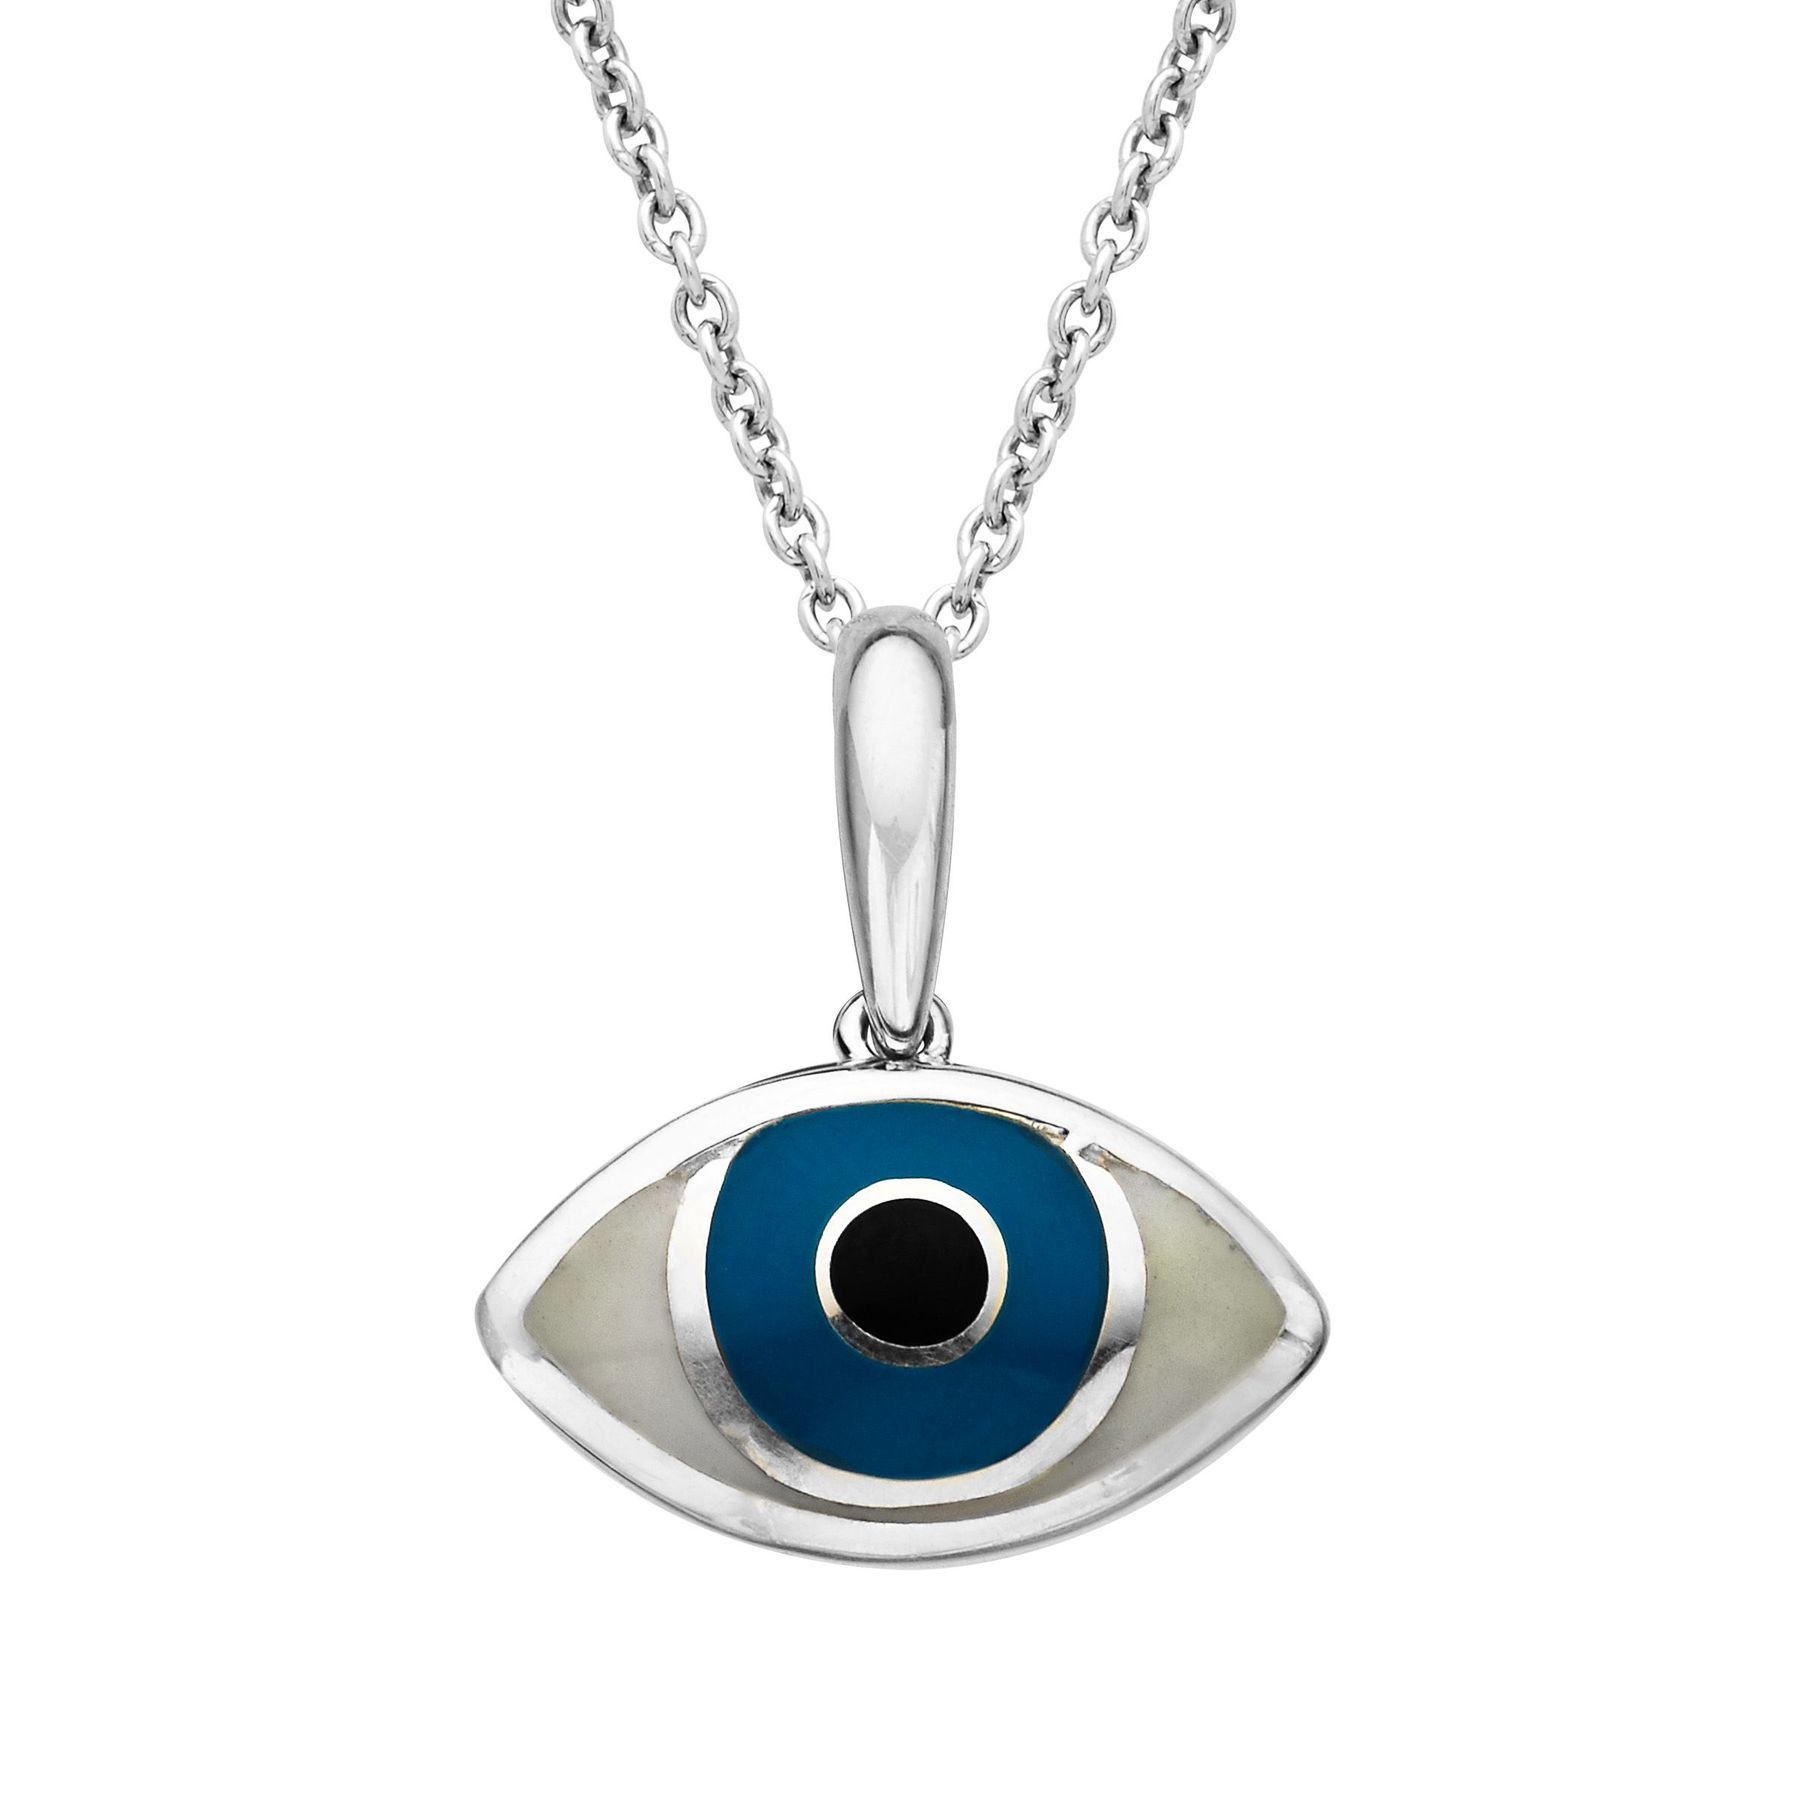 lyst in gallery necklace pendant no gold couture tone metallic product normal juicy jewelry color eye evil